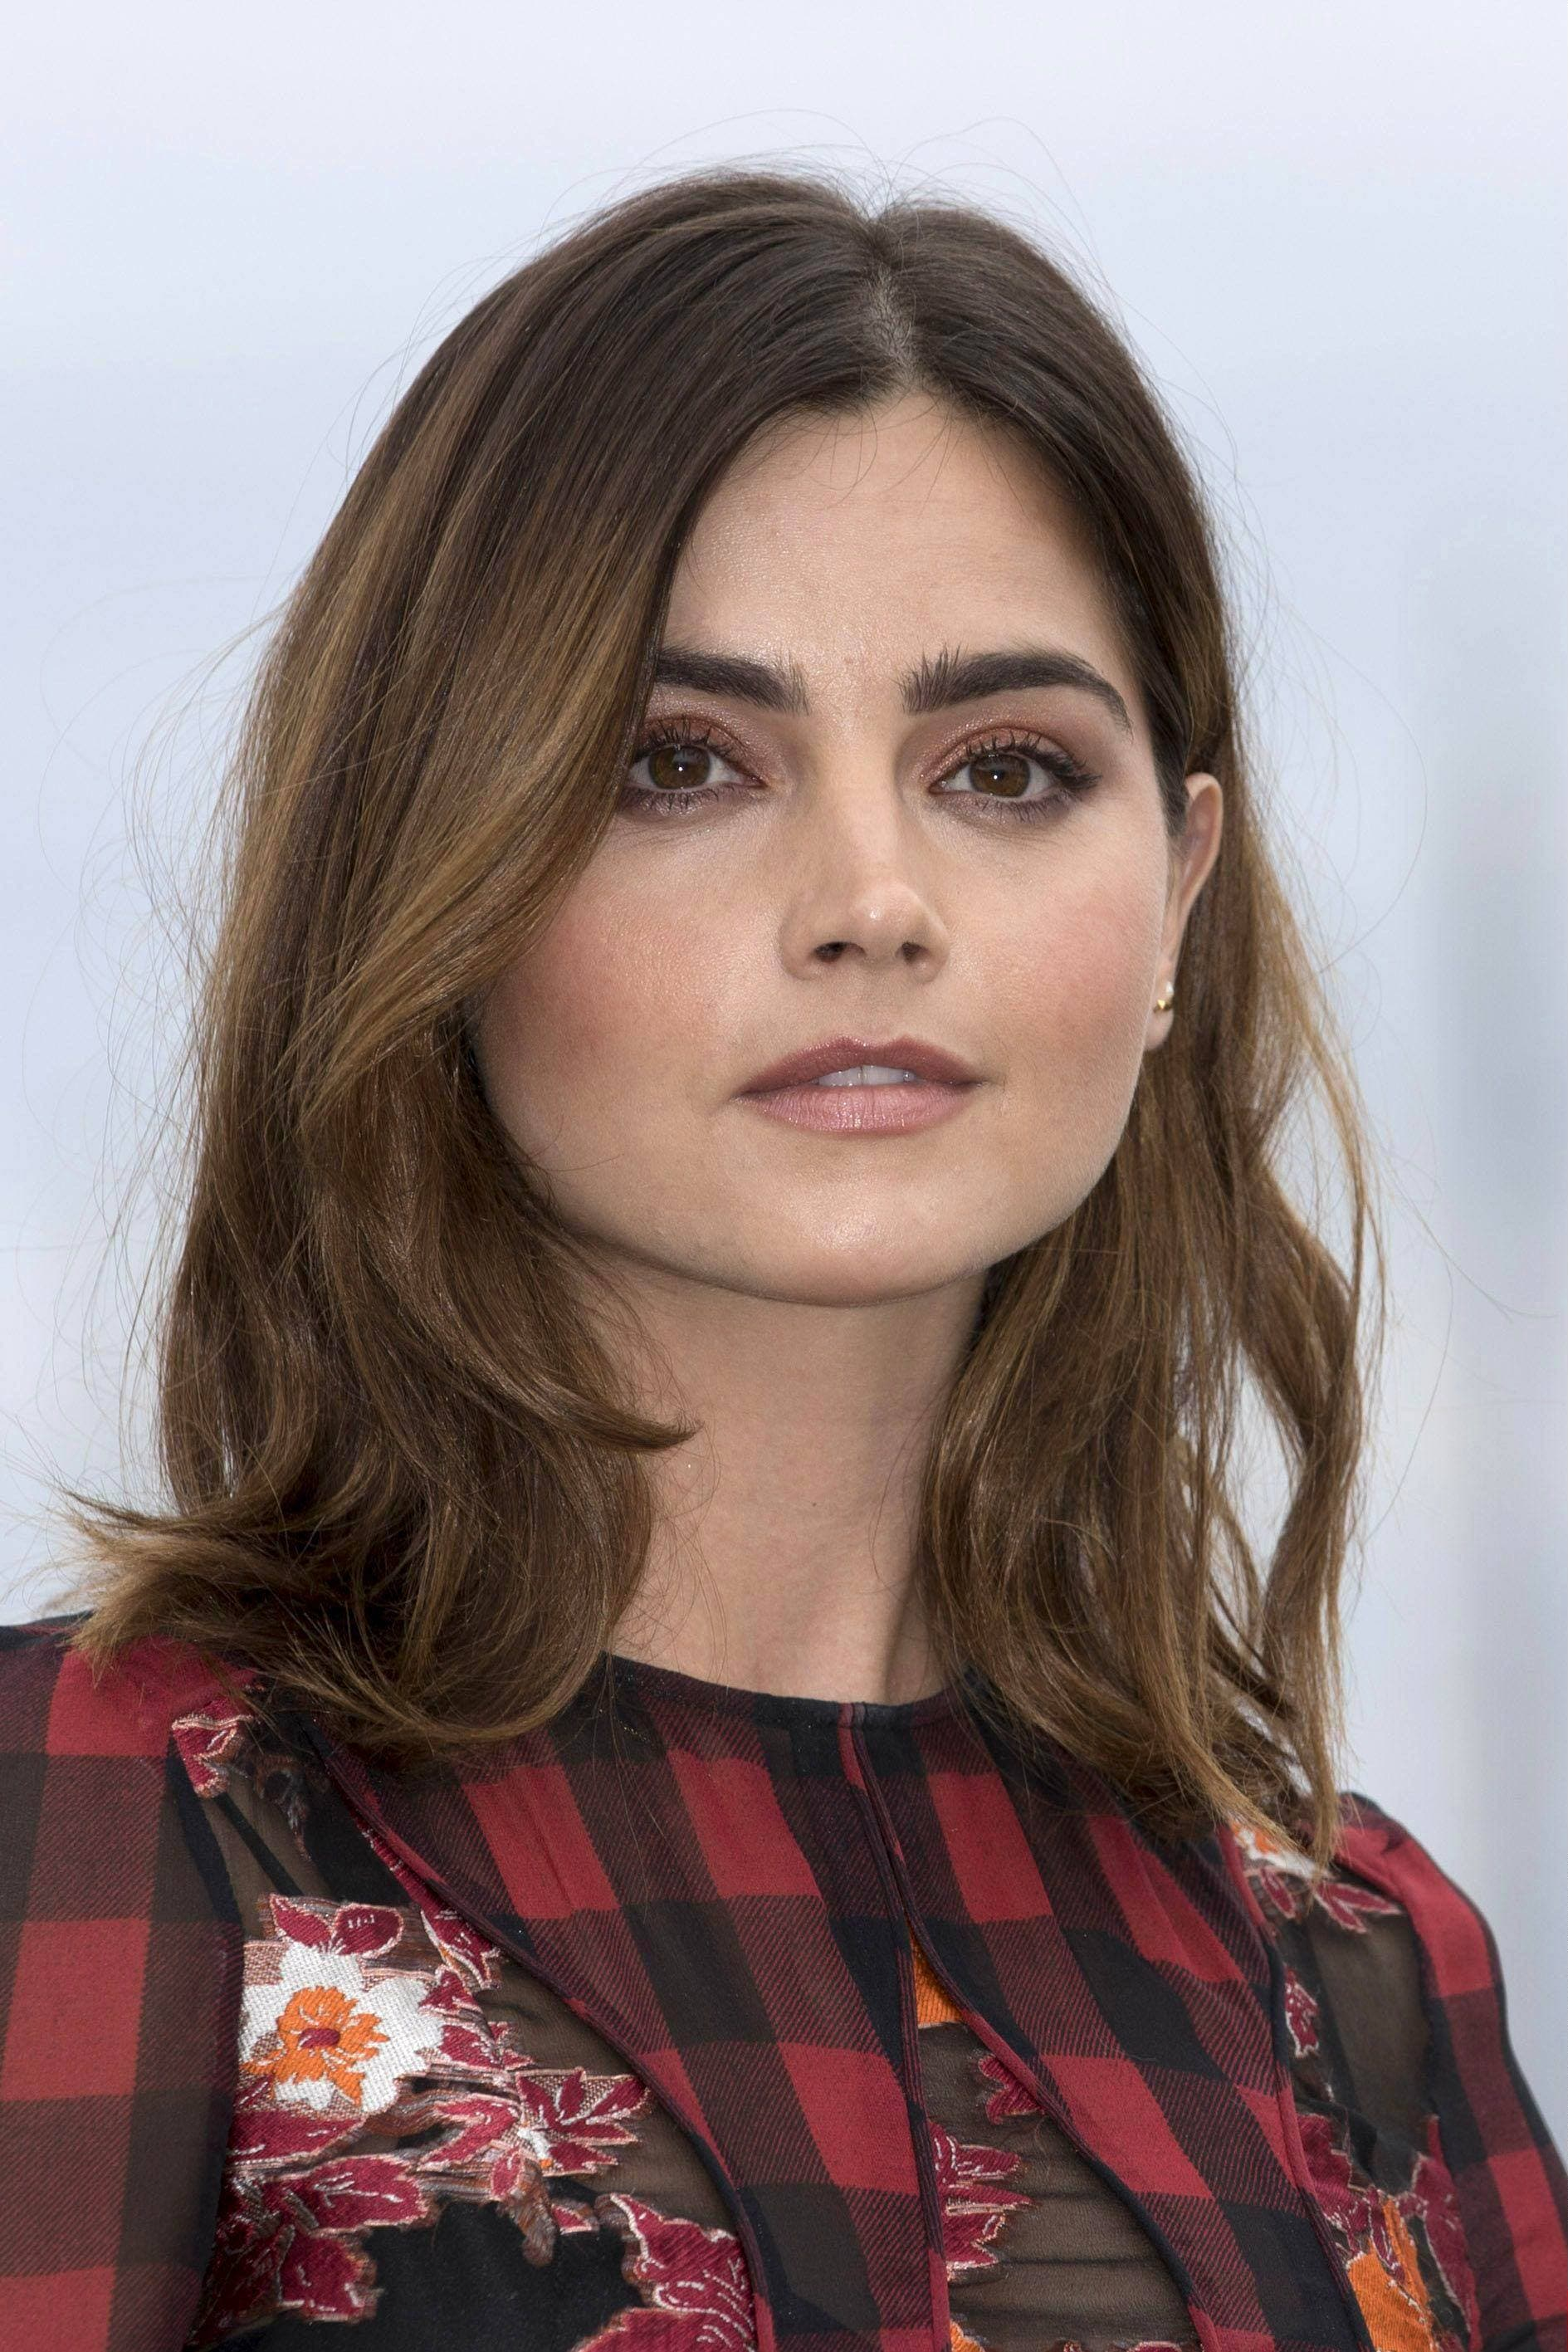 20 Best Shoulder Length Layered Haircut Photos 2019 All